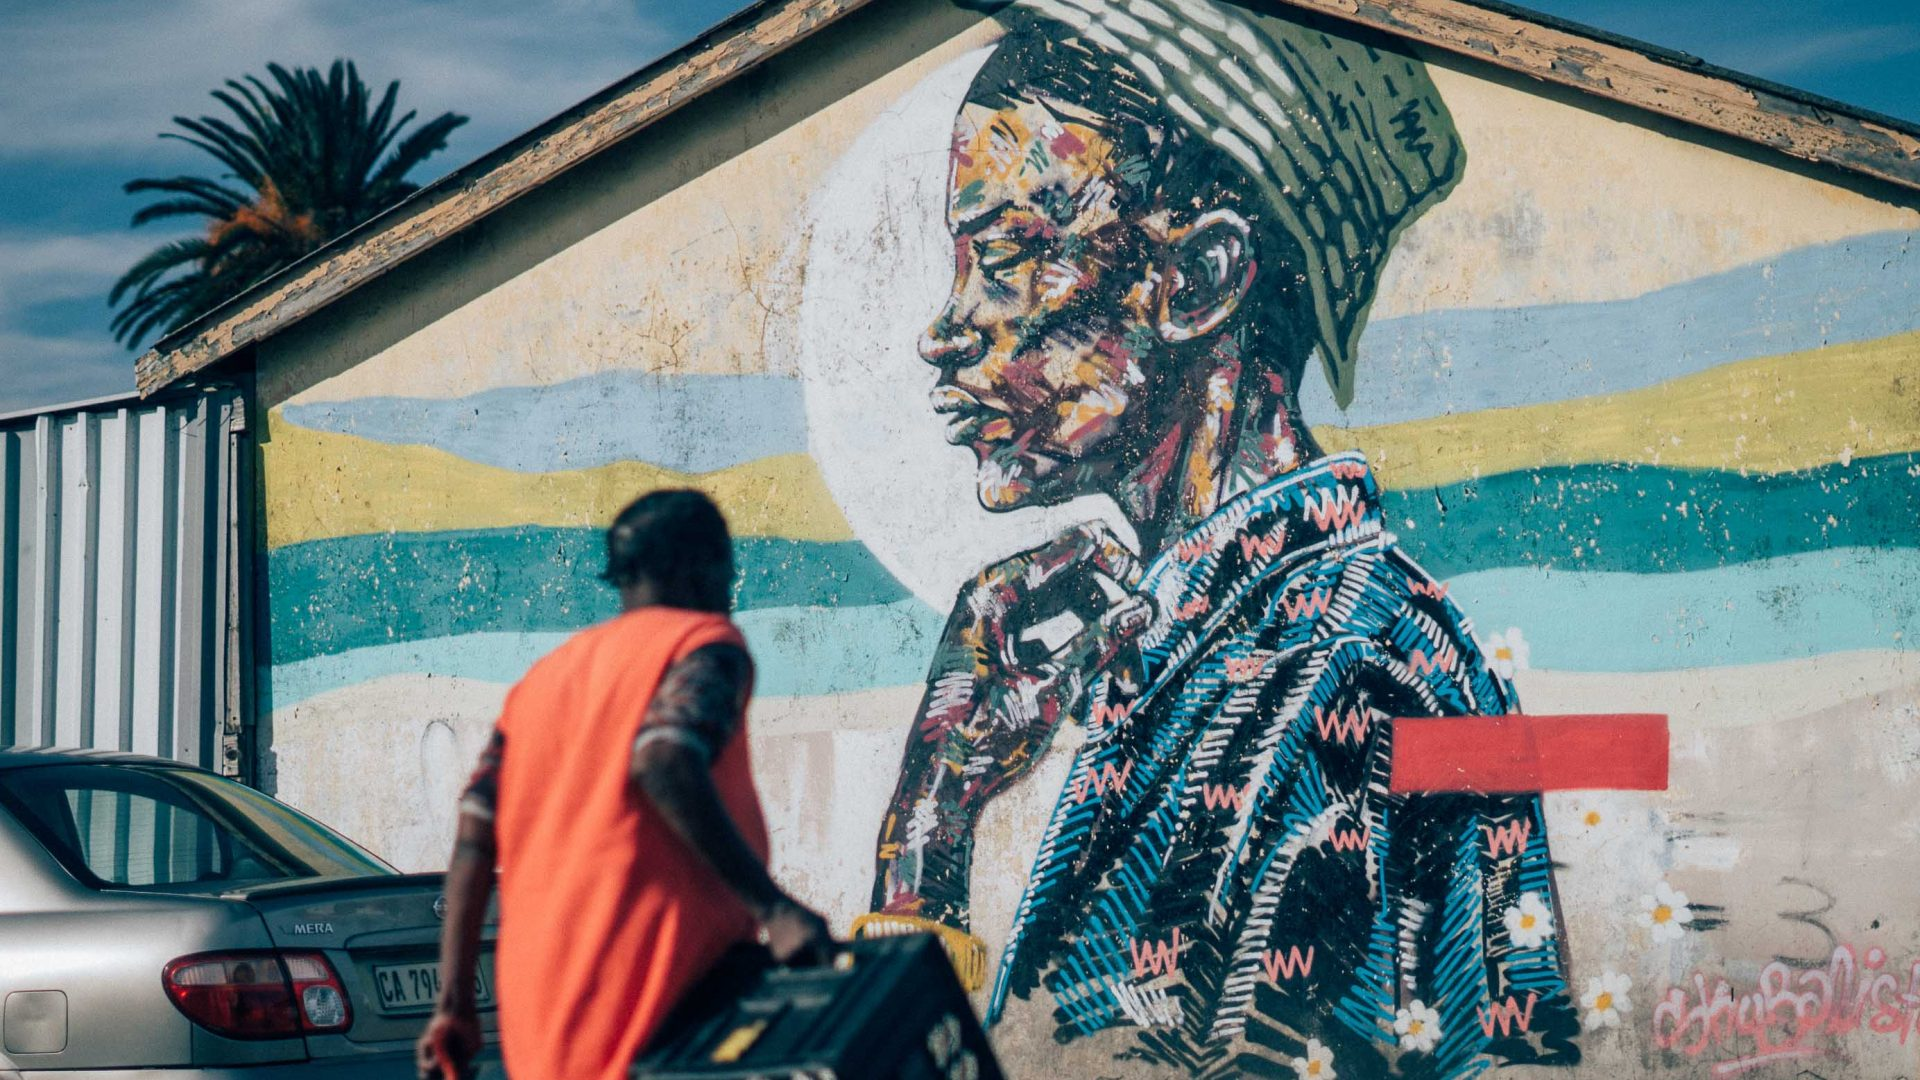 A local woman walks past by a Skubalisto mural in Langa, Cape Town.